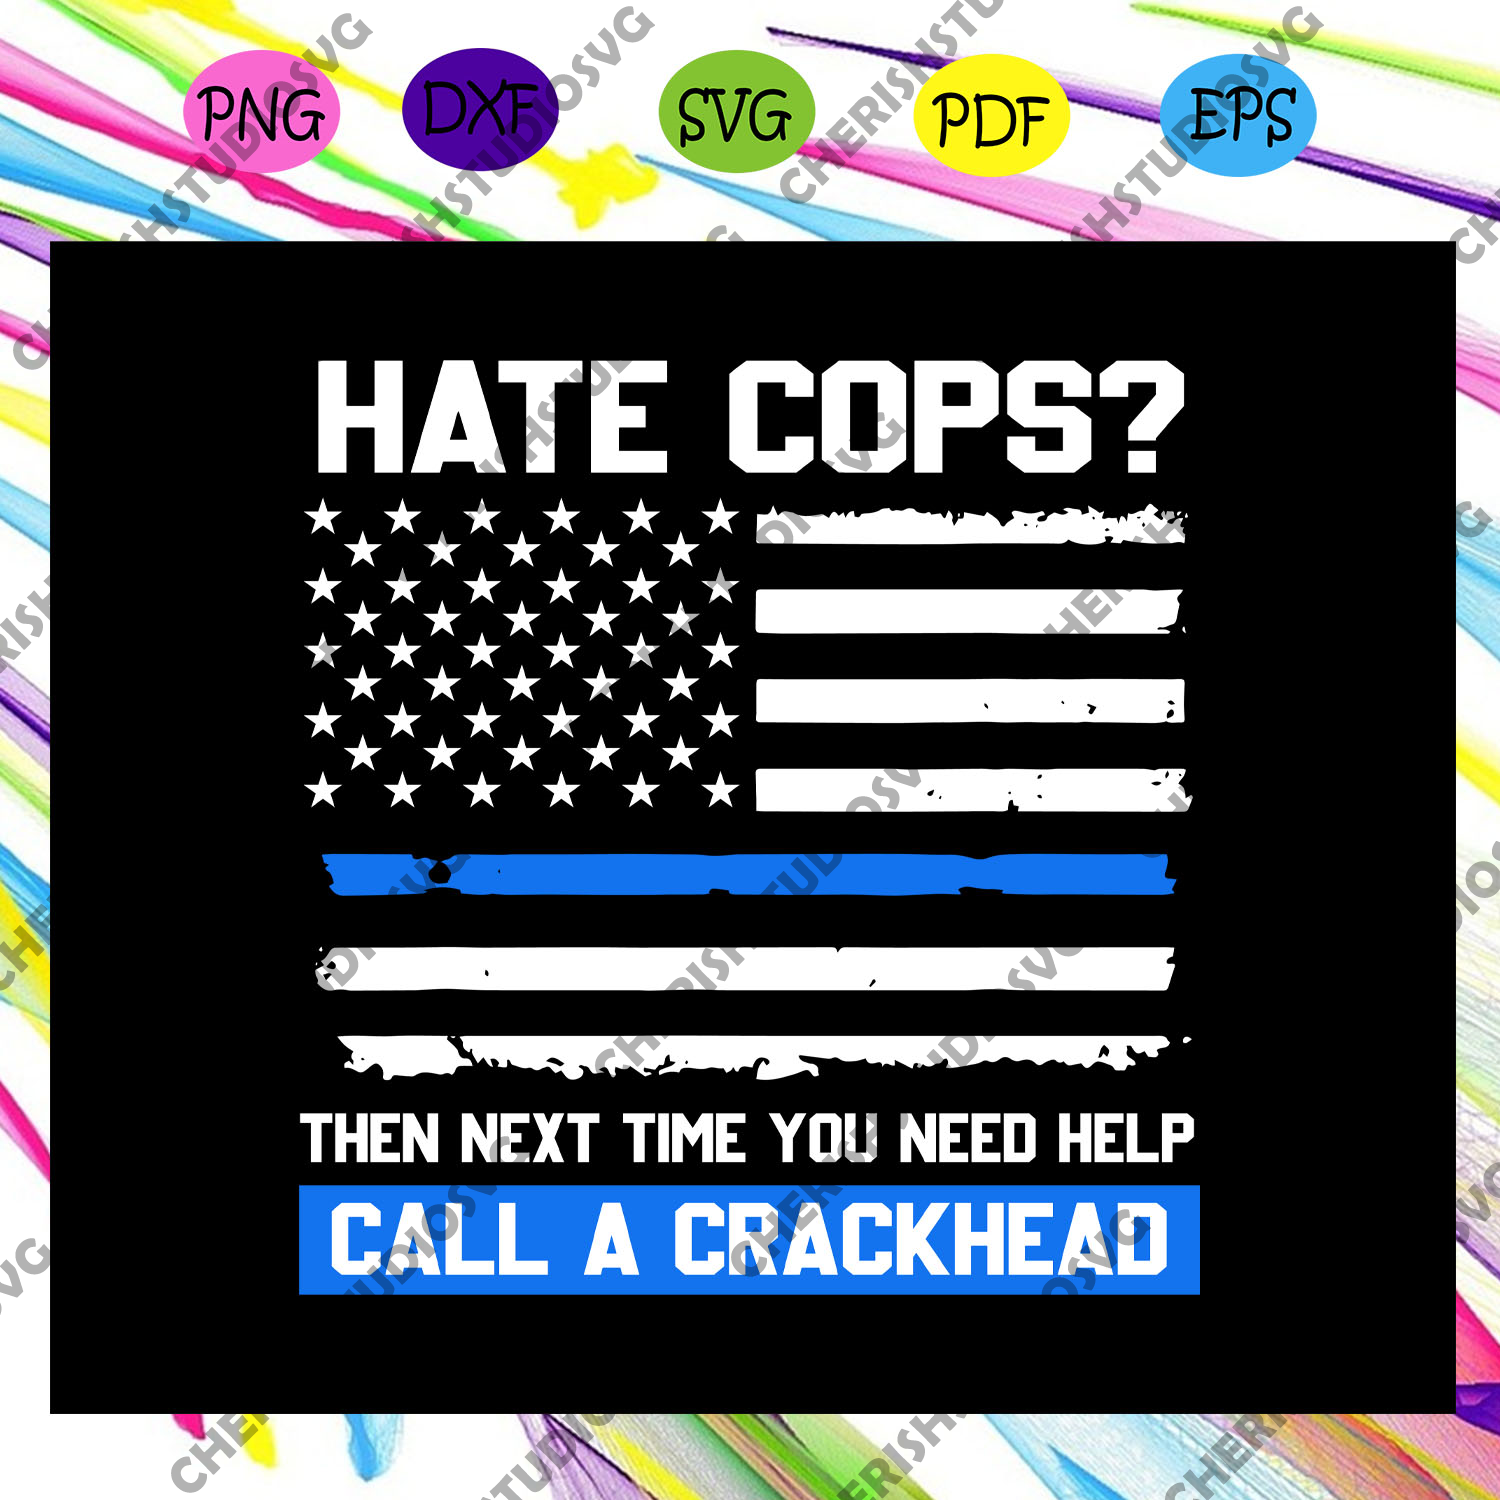 Hate cops? then next time you need help call a crackhead svg, funny cop saying, thin blue line american flag svg, American flag svg, police officer svg, flag svg, Files For Silhouette, Files For Cricut, SVG, DXF, EPS, PNG, Instant Download